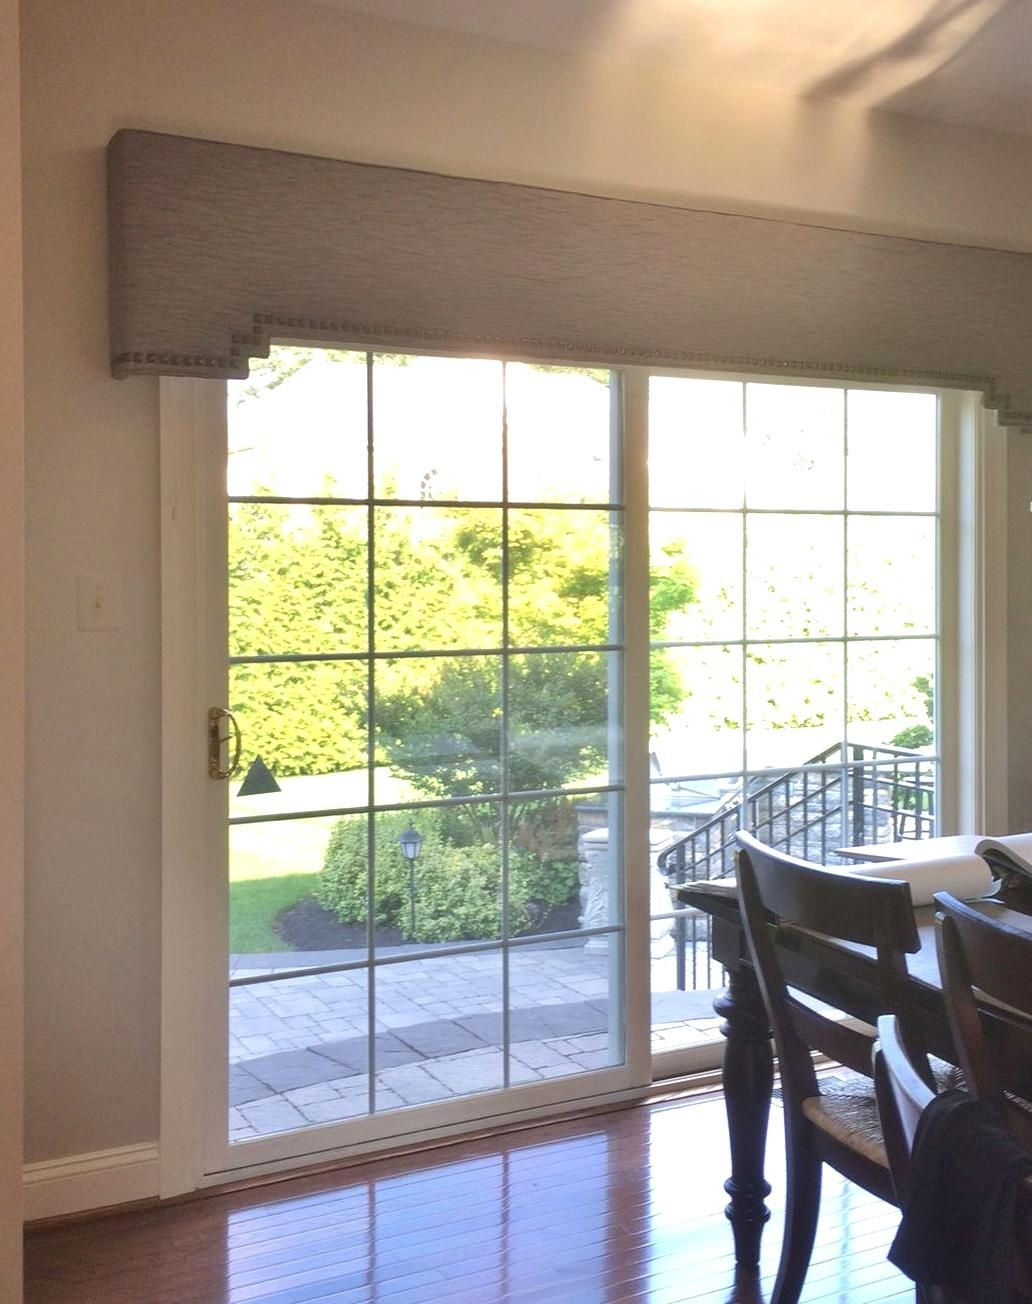 Sliding Door Cornice Board With Stepped Sides And Nailhead Trim By Kristine Robinson Of Rob In 2020 Sliding Door Window Treatments Sliding Door Curtains Door Coverings